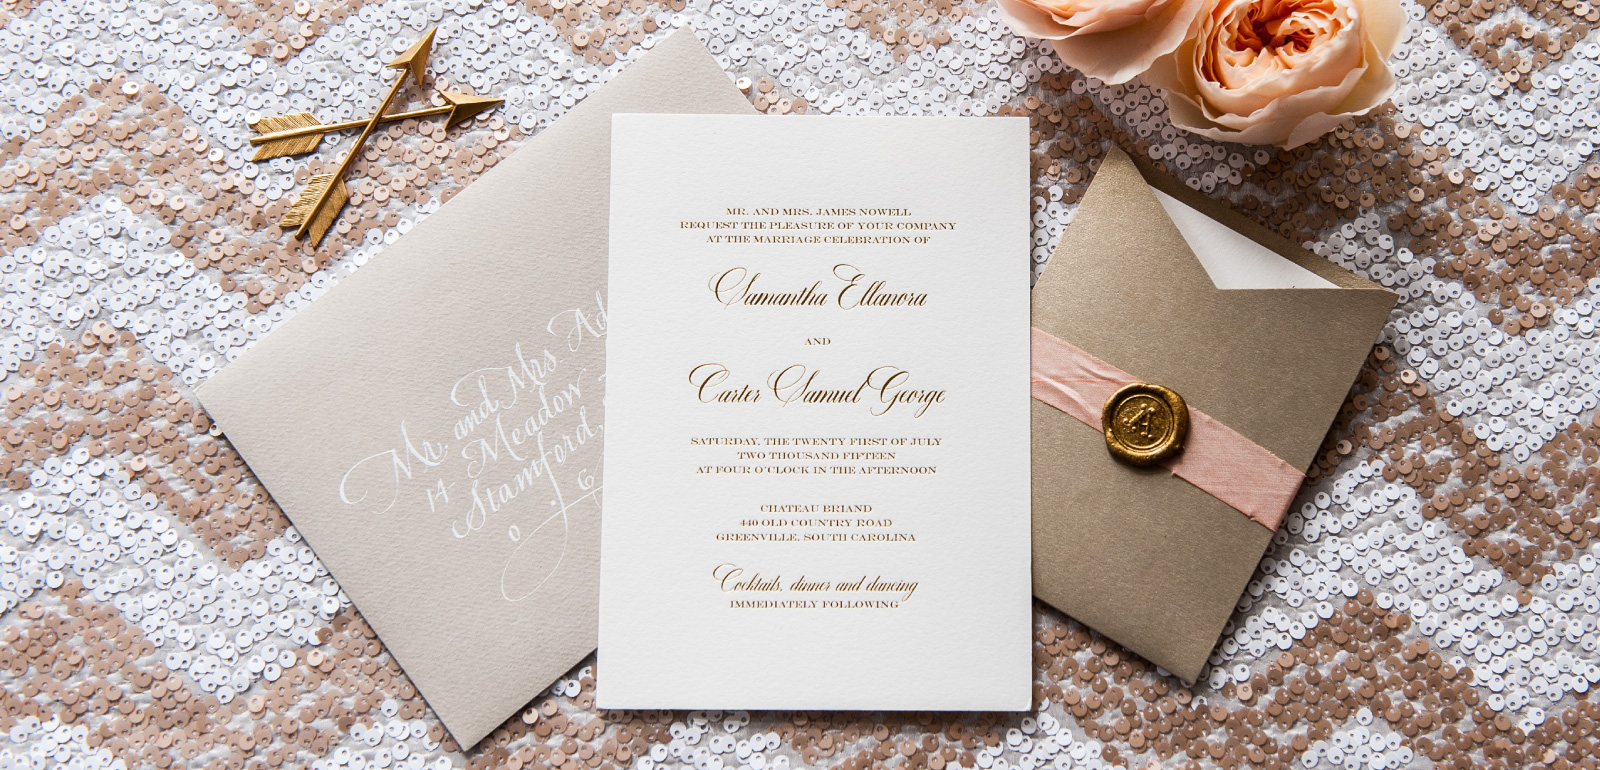 Gold and Silver Foil Wedding Invitations | Foiled Invitations